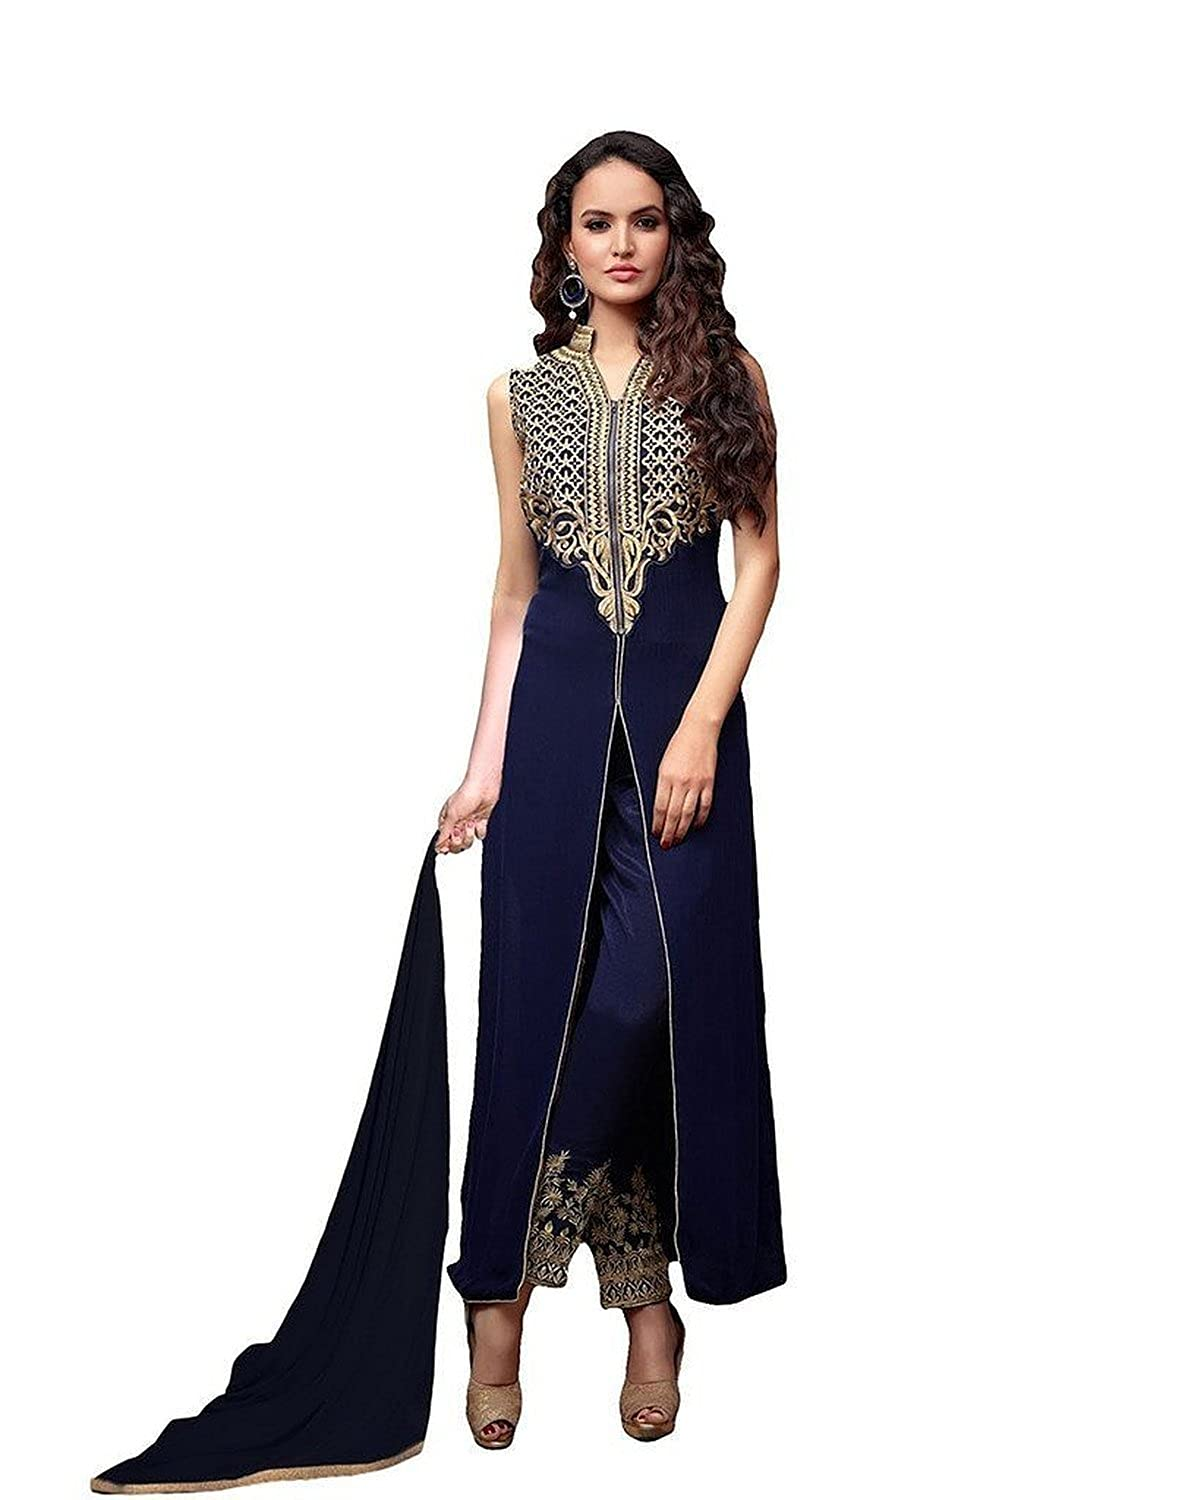 6bfaaf072f Amazon.com  RUHANI Women s Anarkali Salwar Kameez Designer Indian Dress  Bollywood Ethnic Party One Size Blue  Clothing